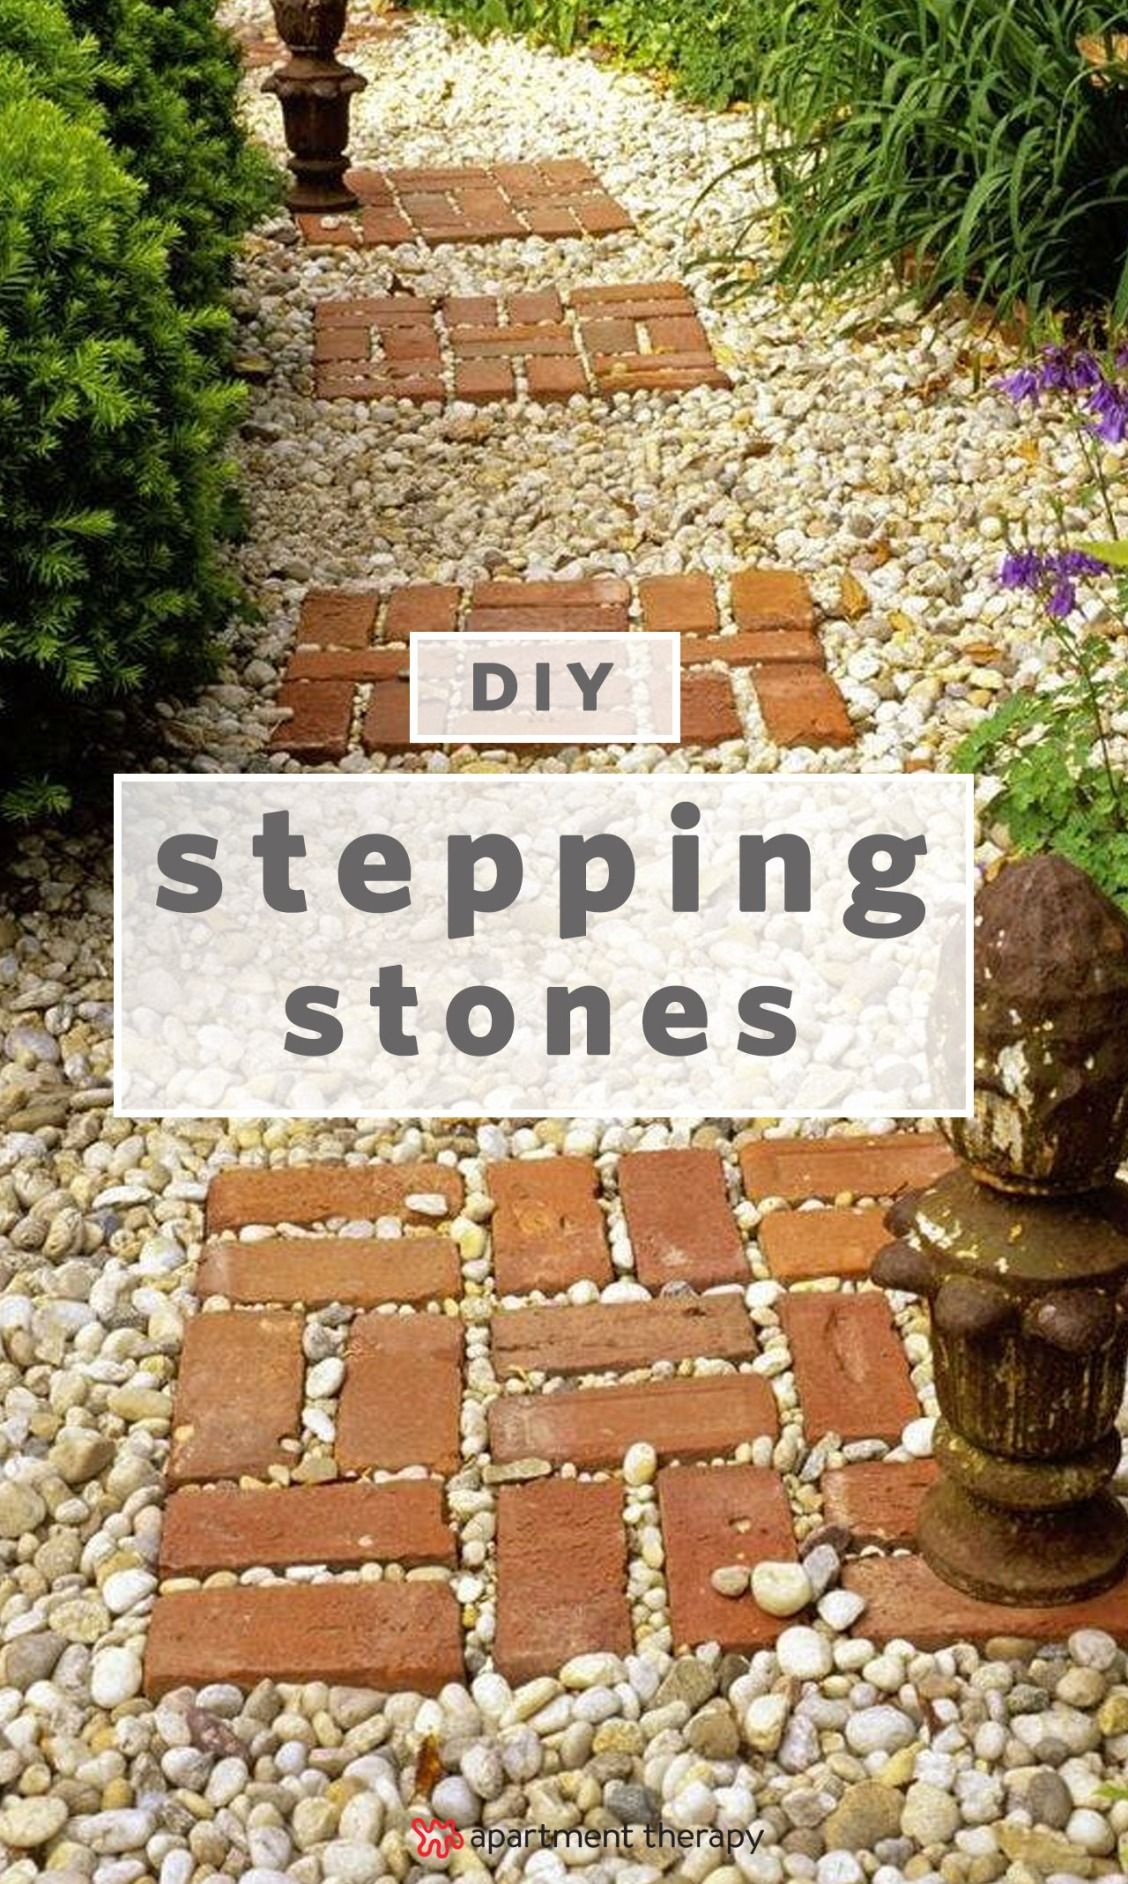 7 Different Ways To Design A Simple DIY Garden Walkway | From Patios To  Stepping Stones, We Have Tips And Ideas On How To Lay Stones And Create A  Garden ...